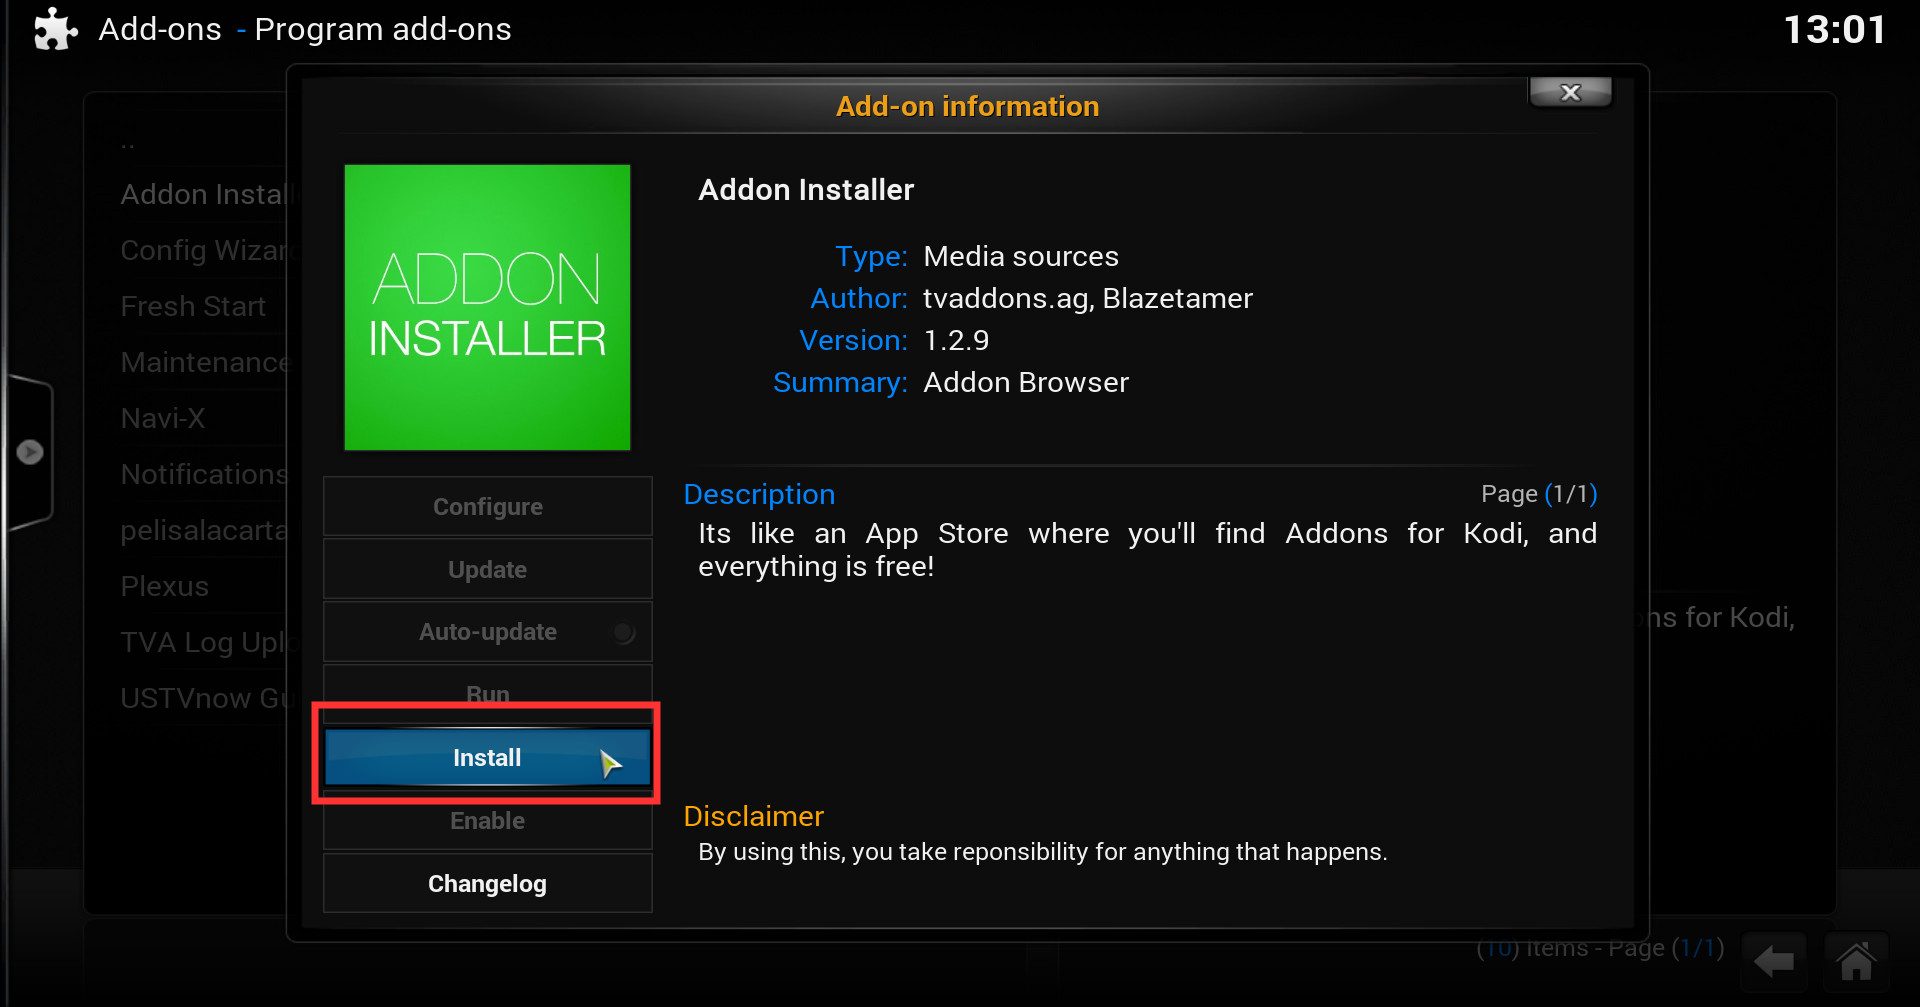 how to install 39 addon installer 39 by tvaddons a app store like kodi addon iwf1. Black Bedroom Furniture Sets. Home Design Ideas